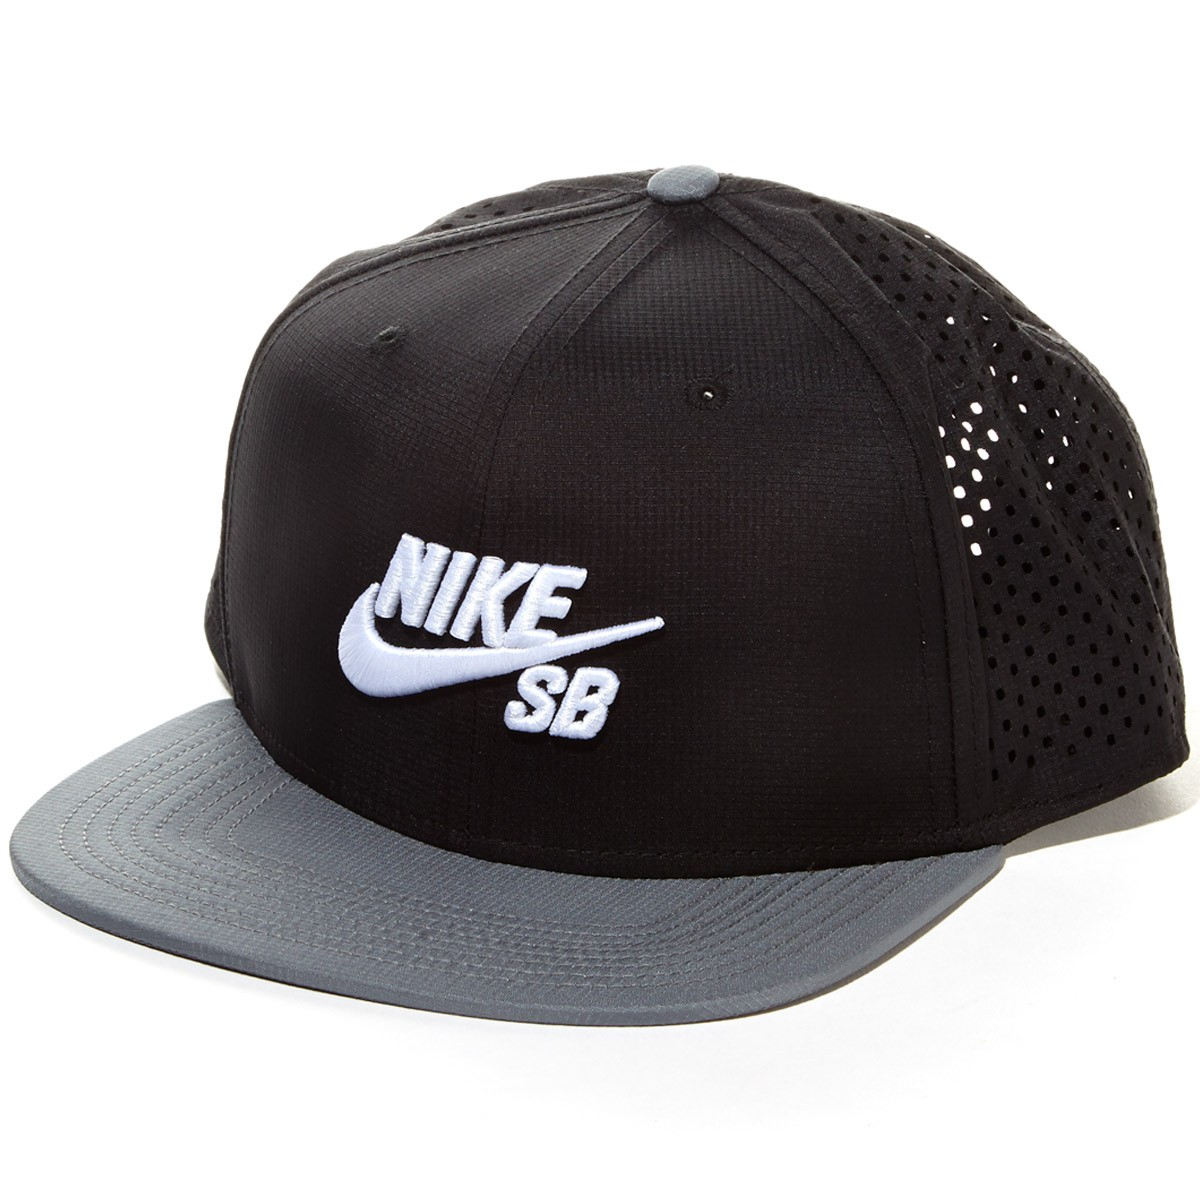 Nike SB Performance Hat - Black/Grey/Black